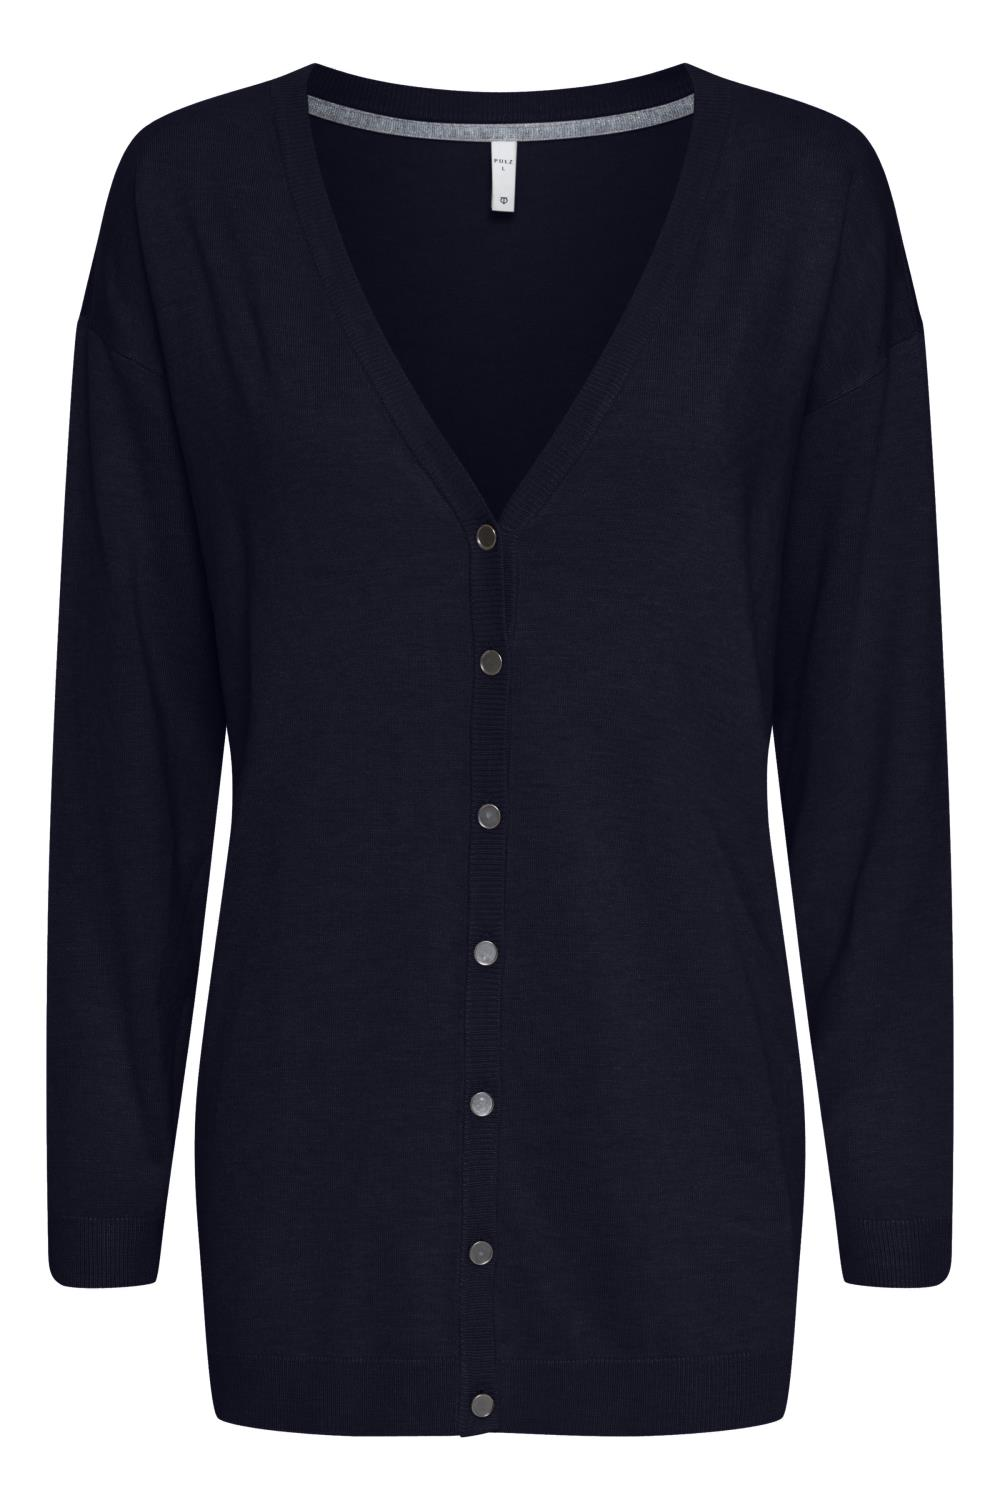 Pulz Sara cardigan, black beauty